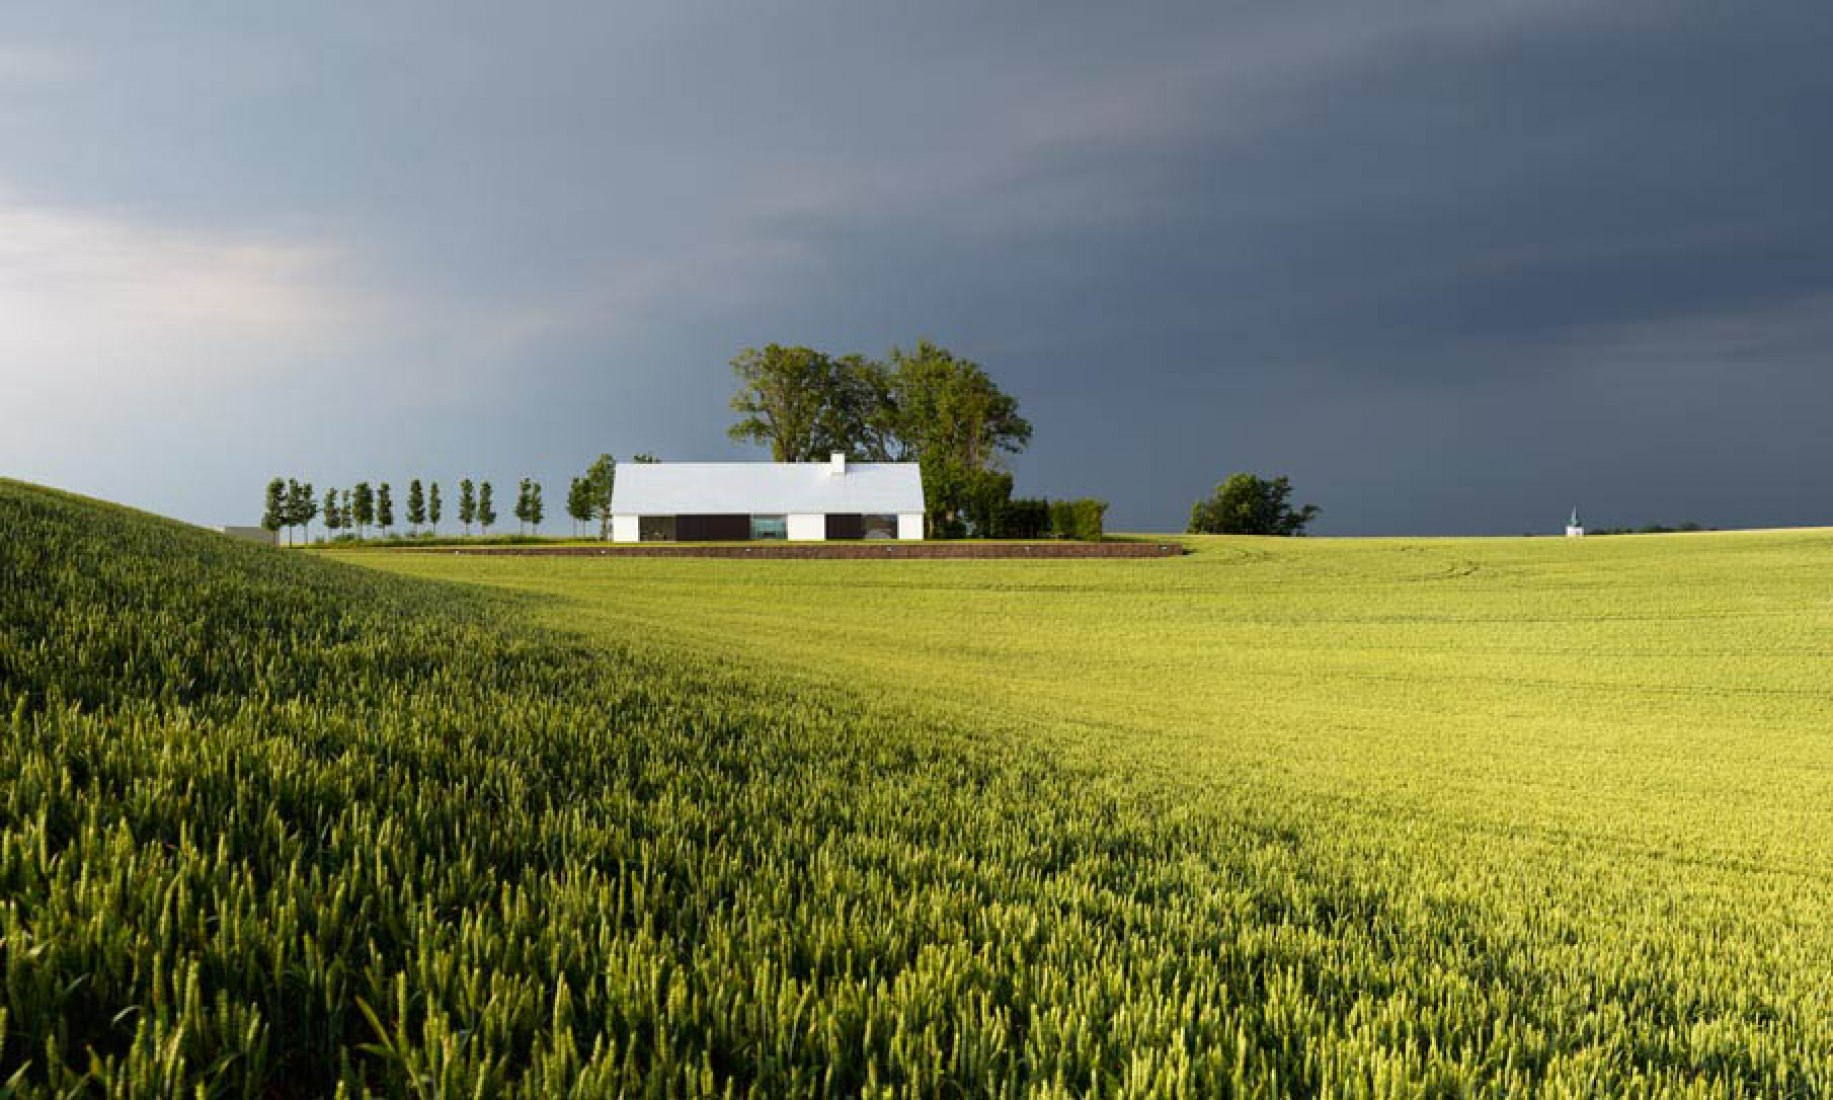 John pawson in germany metalocus for Munchen architekturmuseum